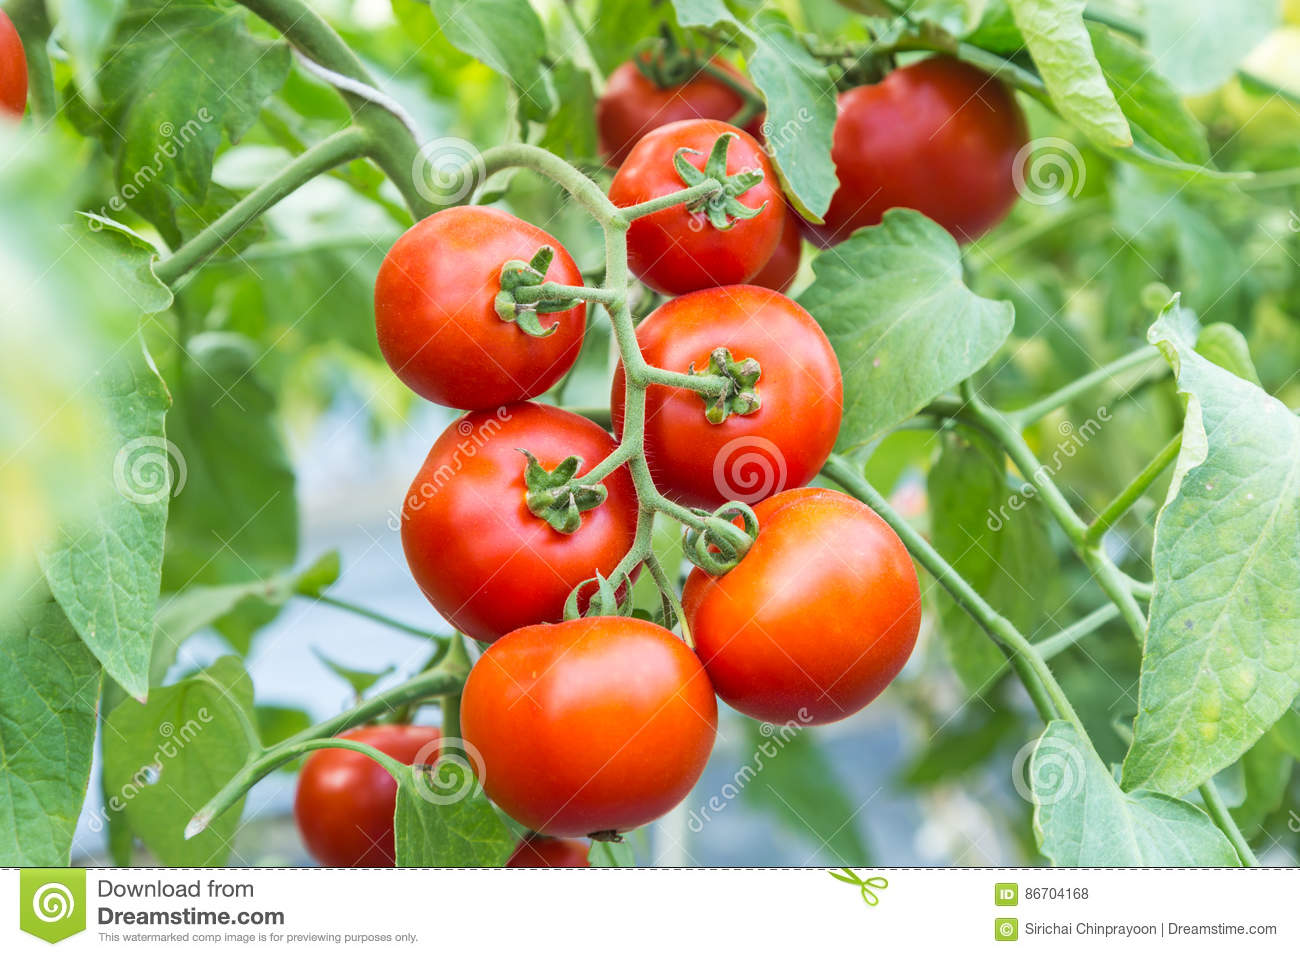 Ripe red tomato growing on branch in field